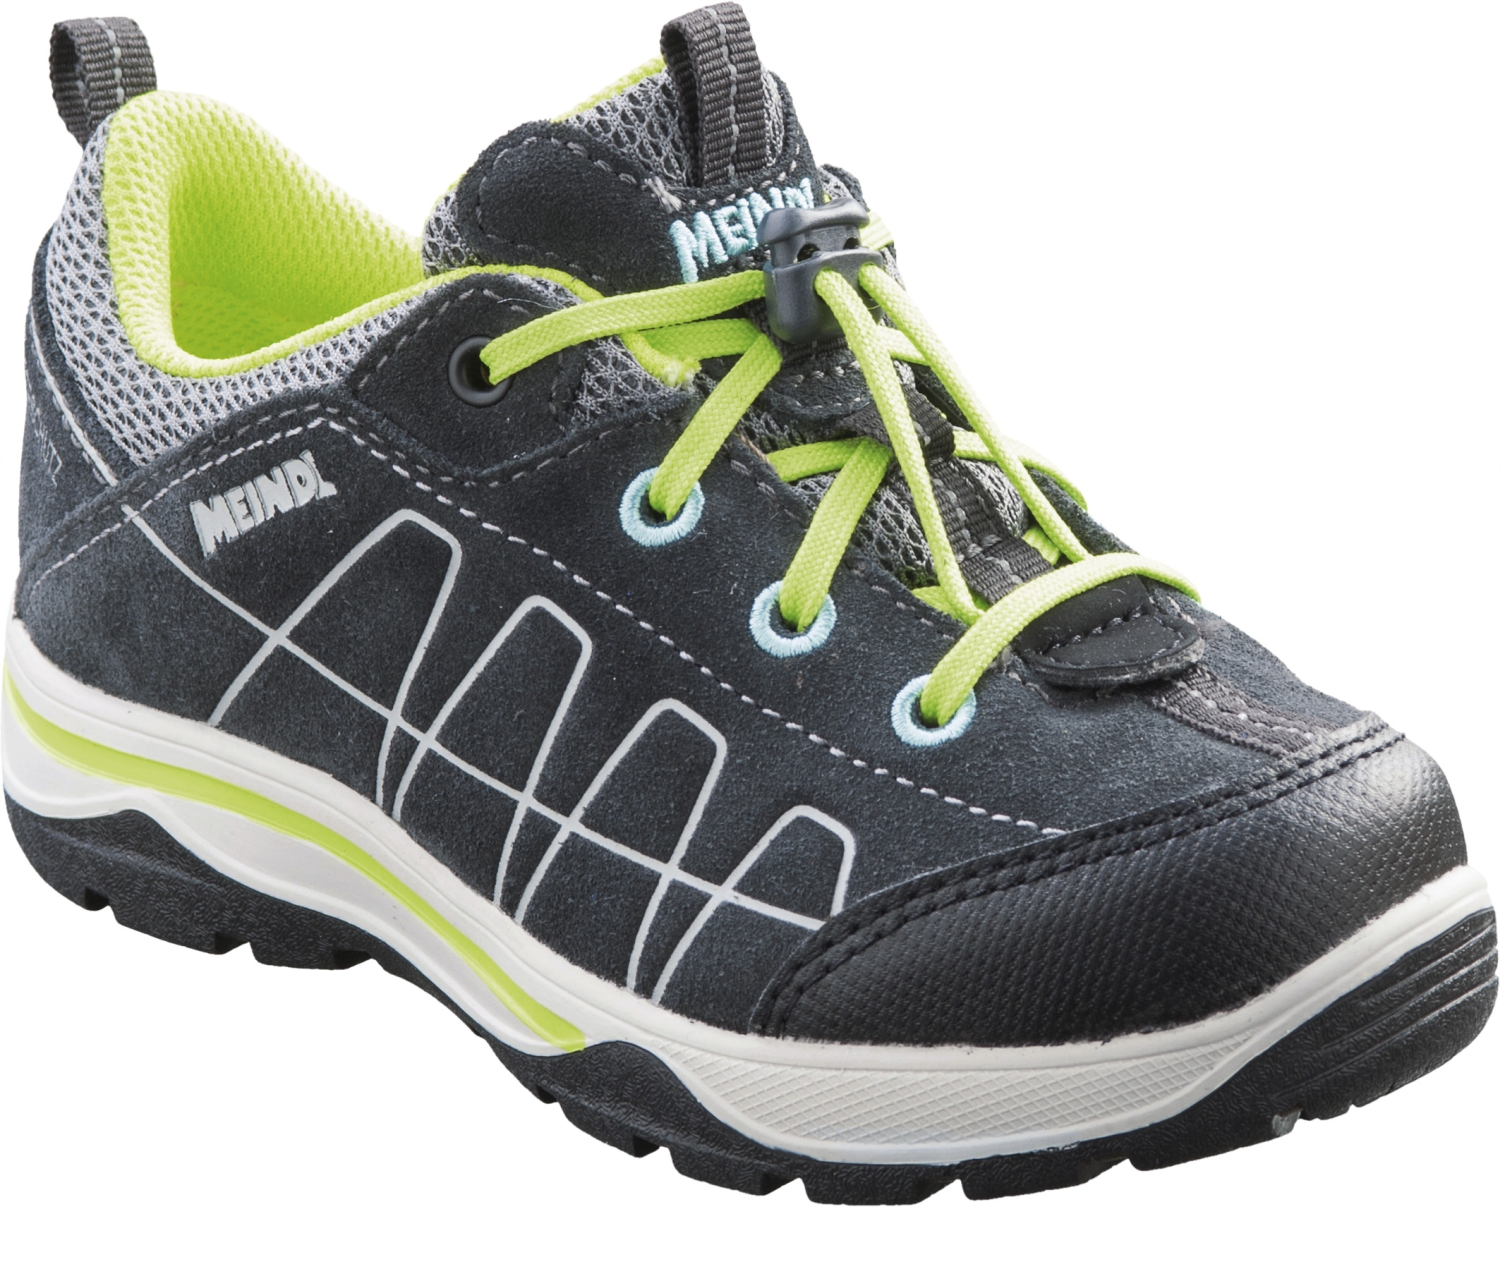 best service dcc68 eb24b Meindl Pinedo Kinder-Outdoorschuhe (anthrazit/lemon)